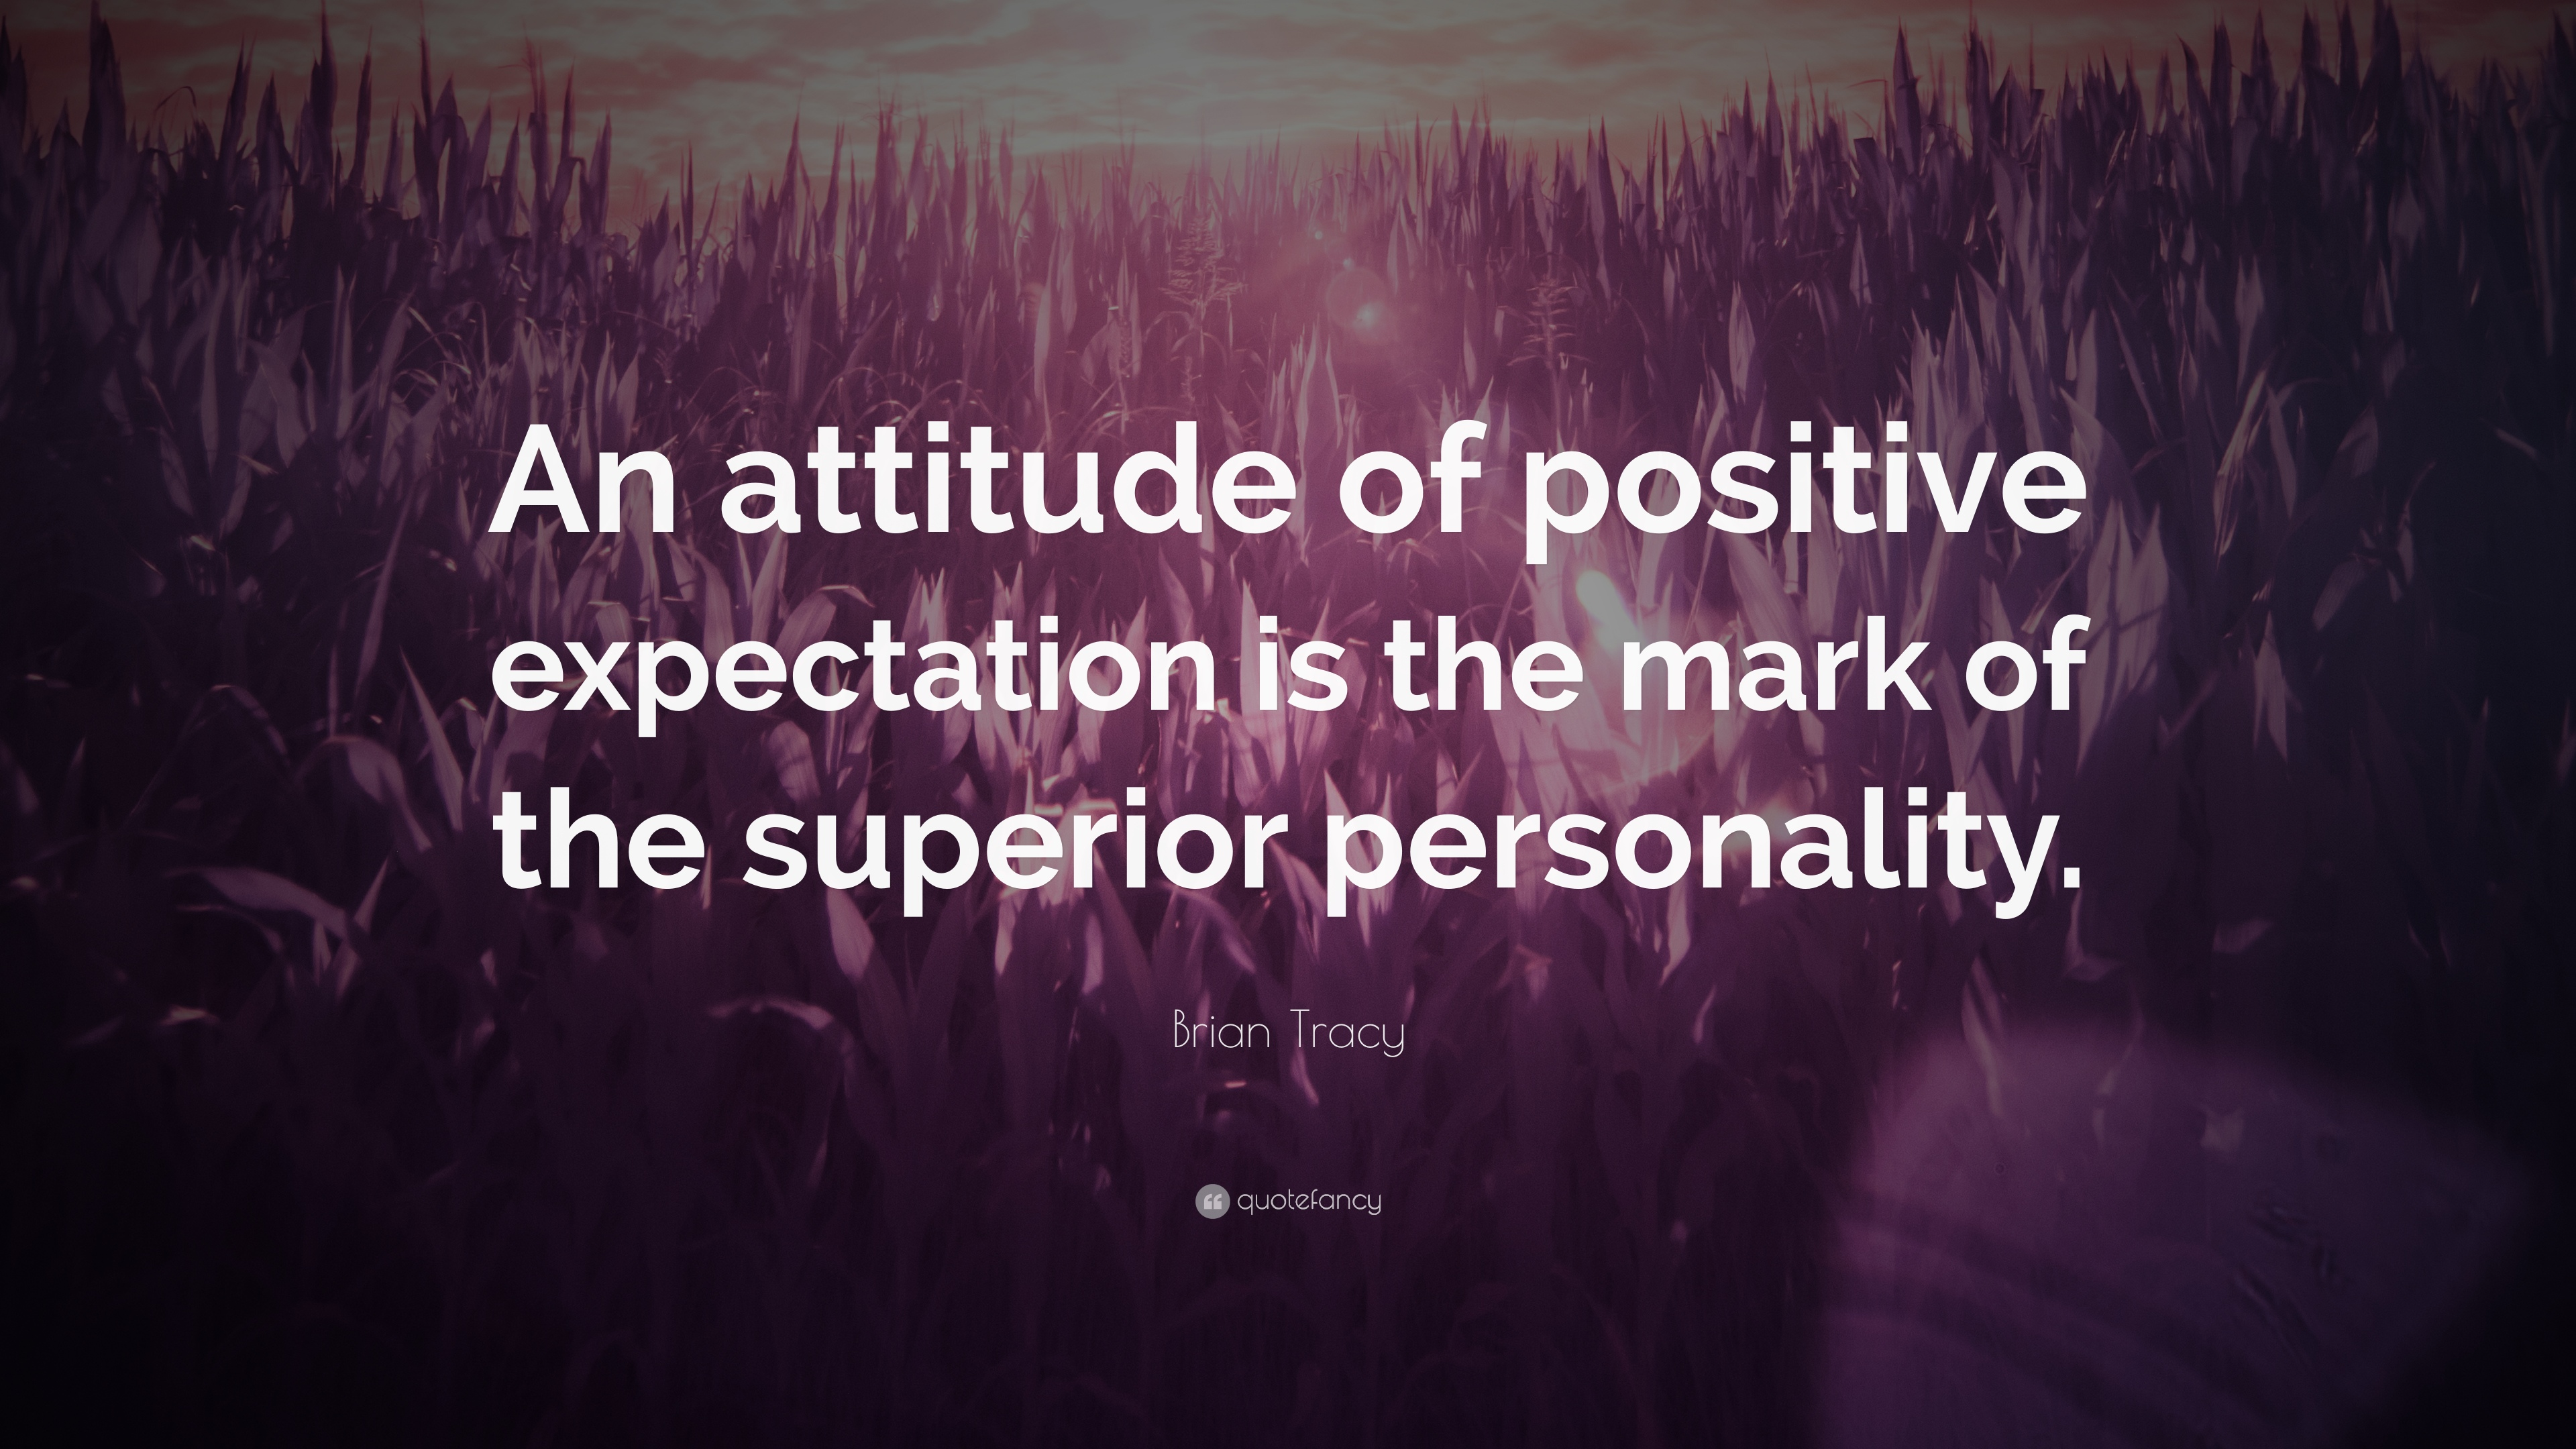 Positive Quotes: U201cAn Attitude Of Positive Expectation Is The Mark Of The  Superior Personality